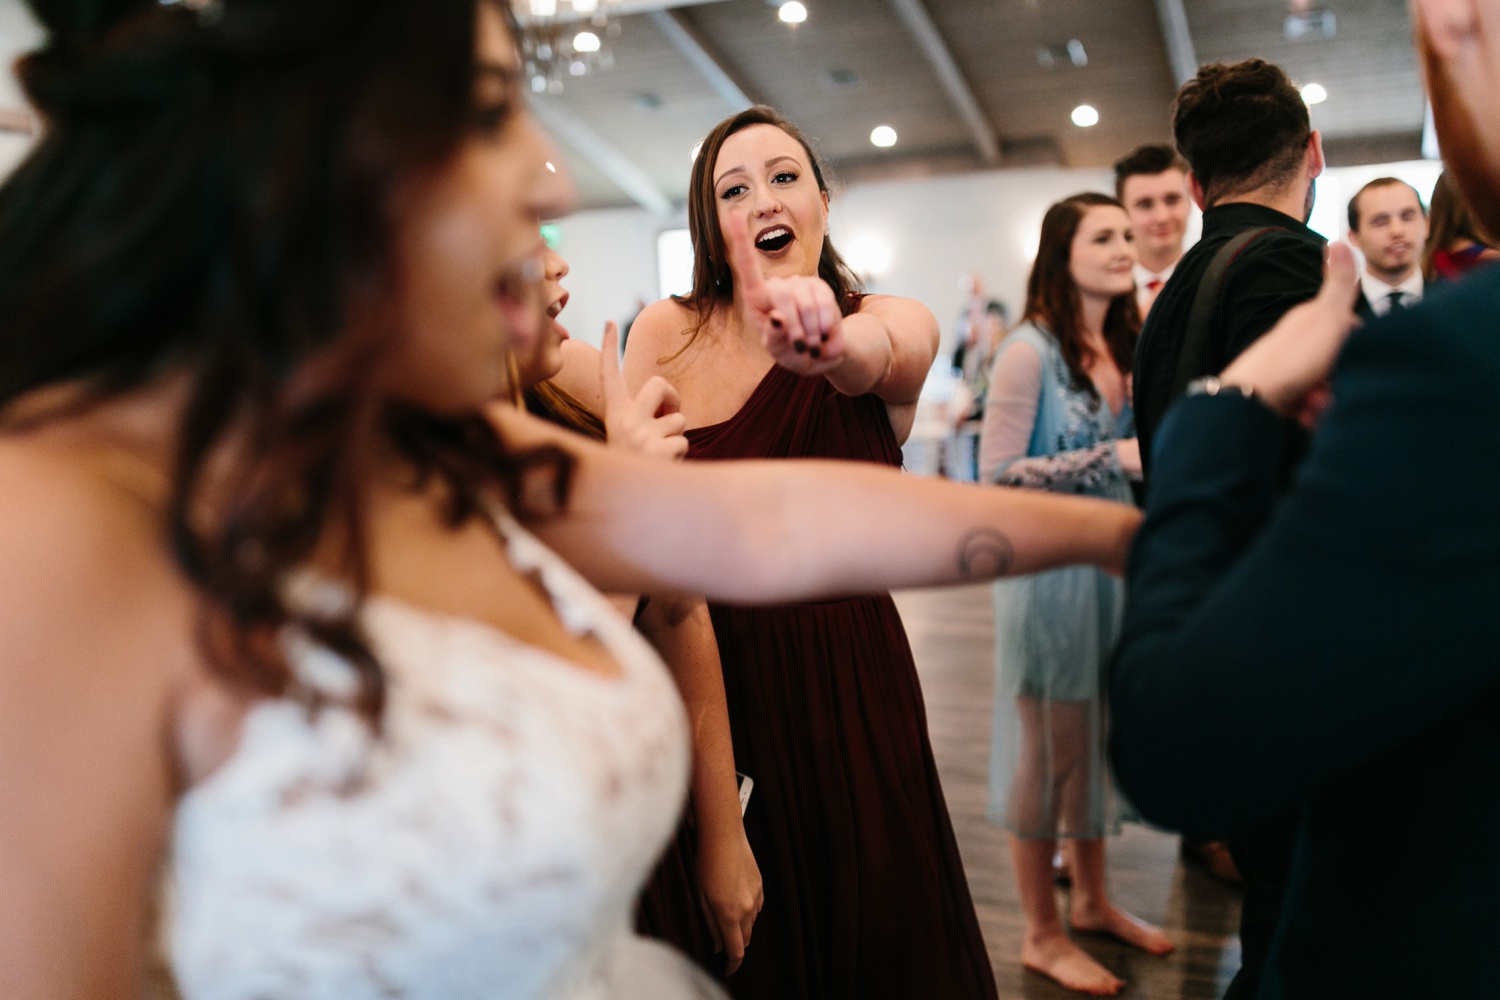 Grant + Lysette | a vibrant, deep burgundy and navy, and mixed metals wedding at Hidden Pines Chapel by North Texas Wedding Photographer Rachel Meagan Photography 167